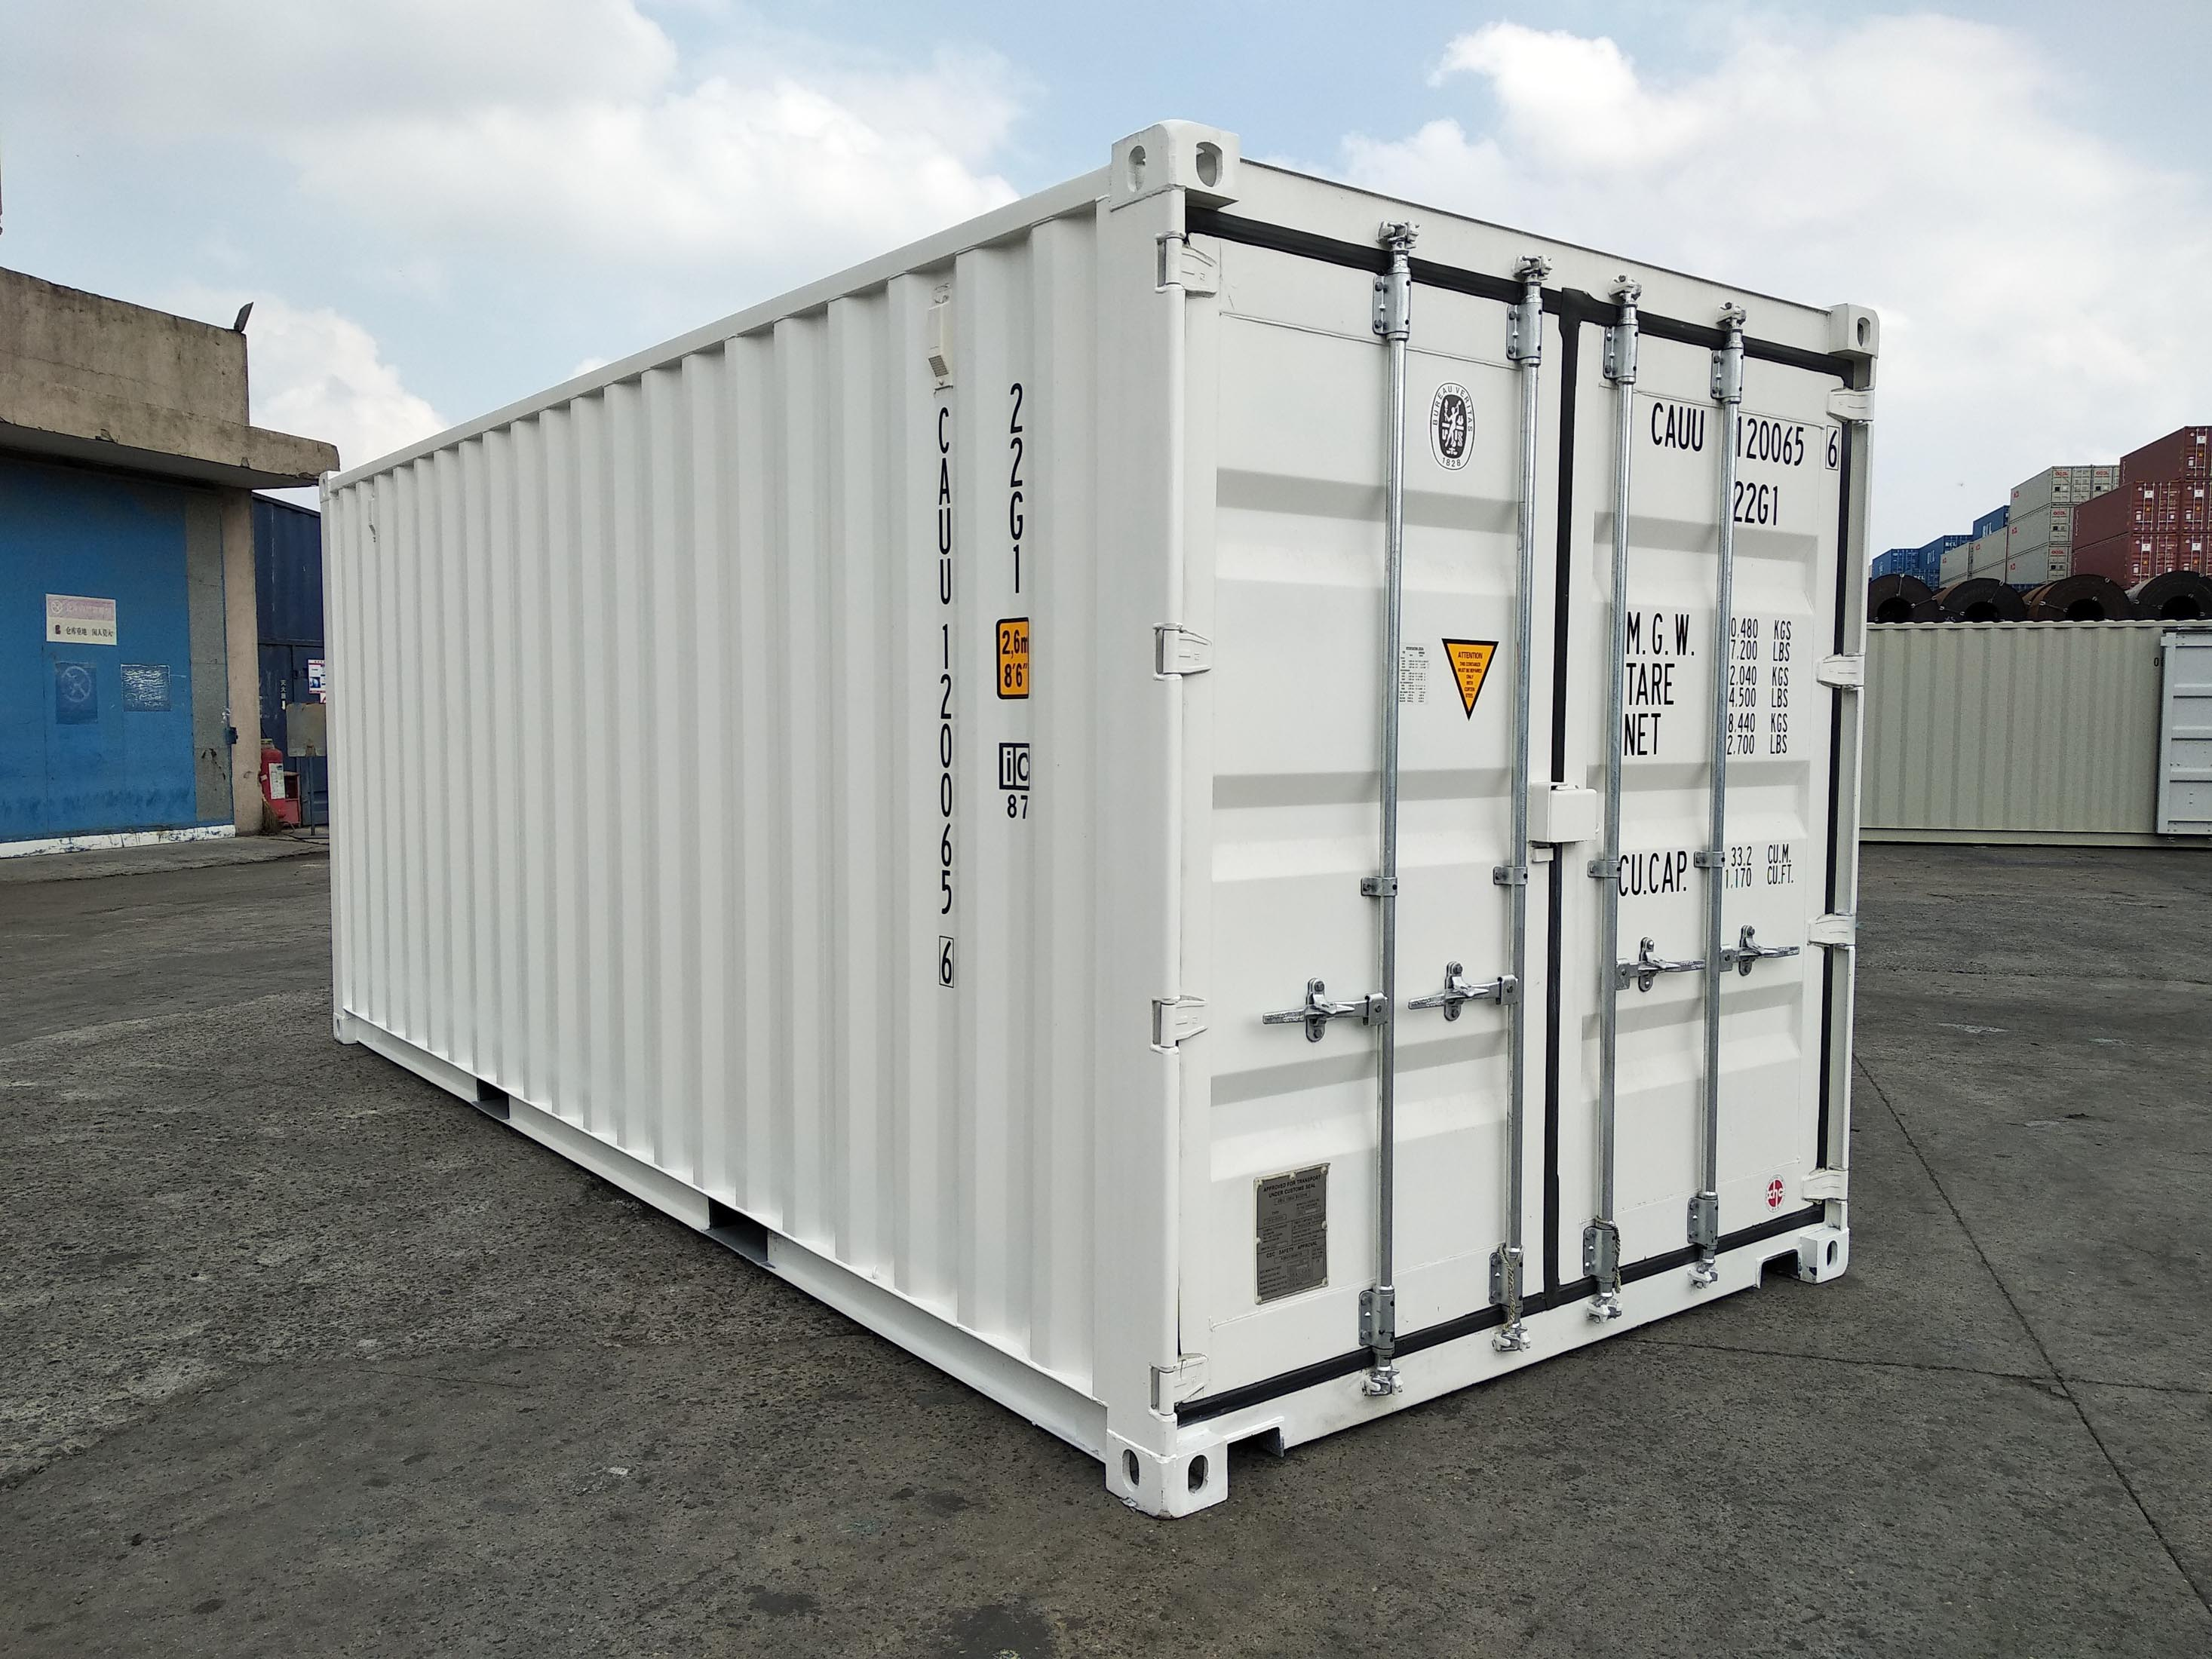 20 fods container